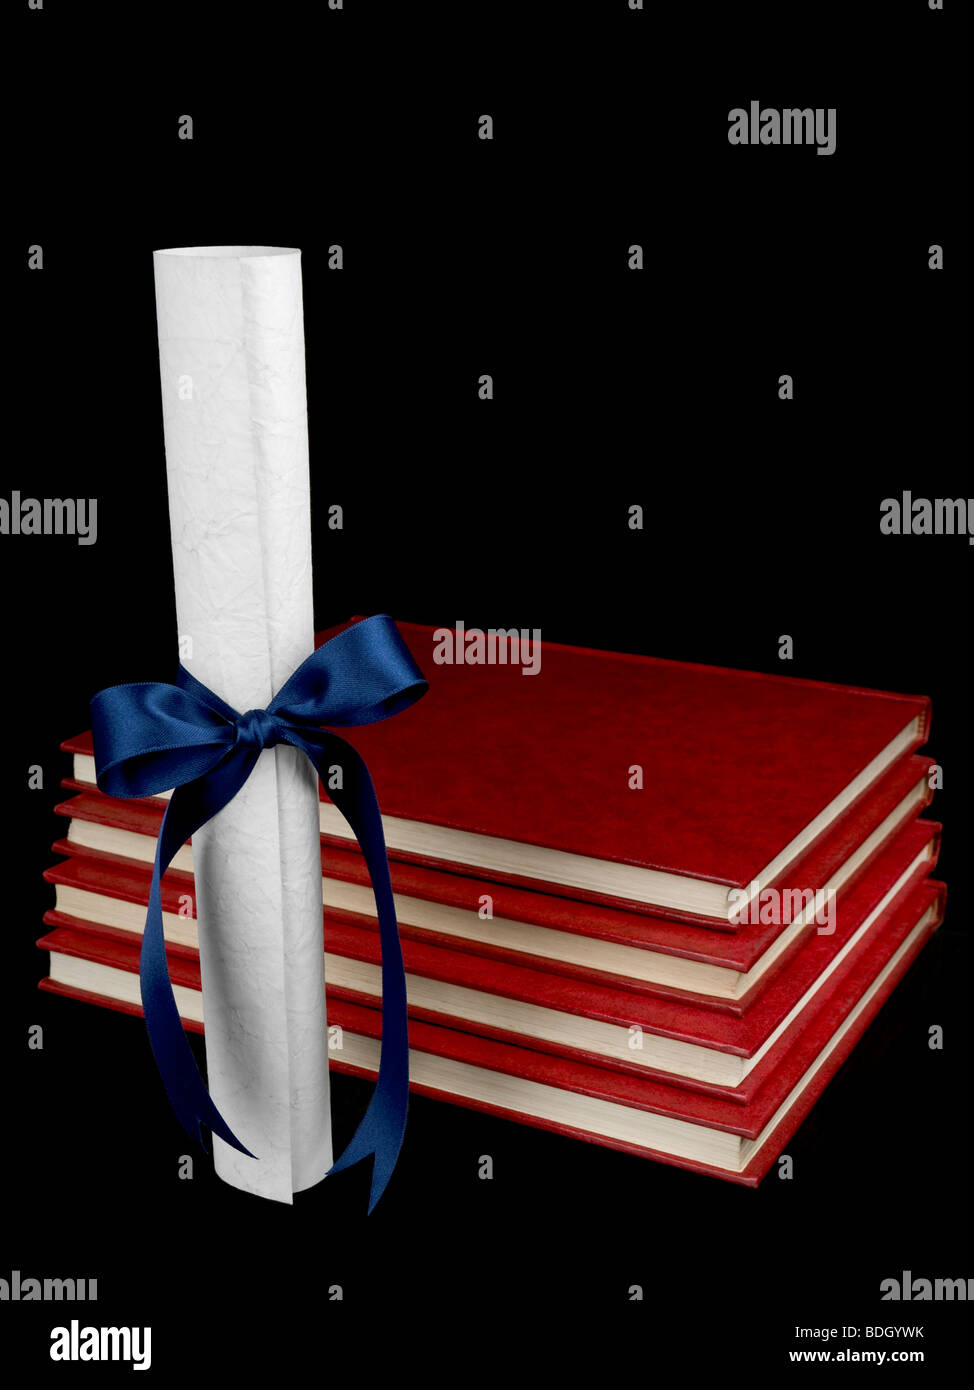 A diploma with blue ribbon and several books aside. Isolated on black. - Stock Image